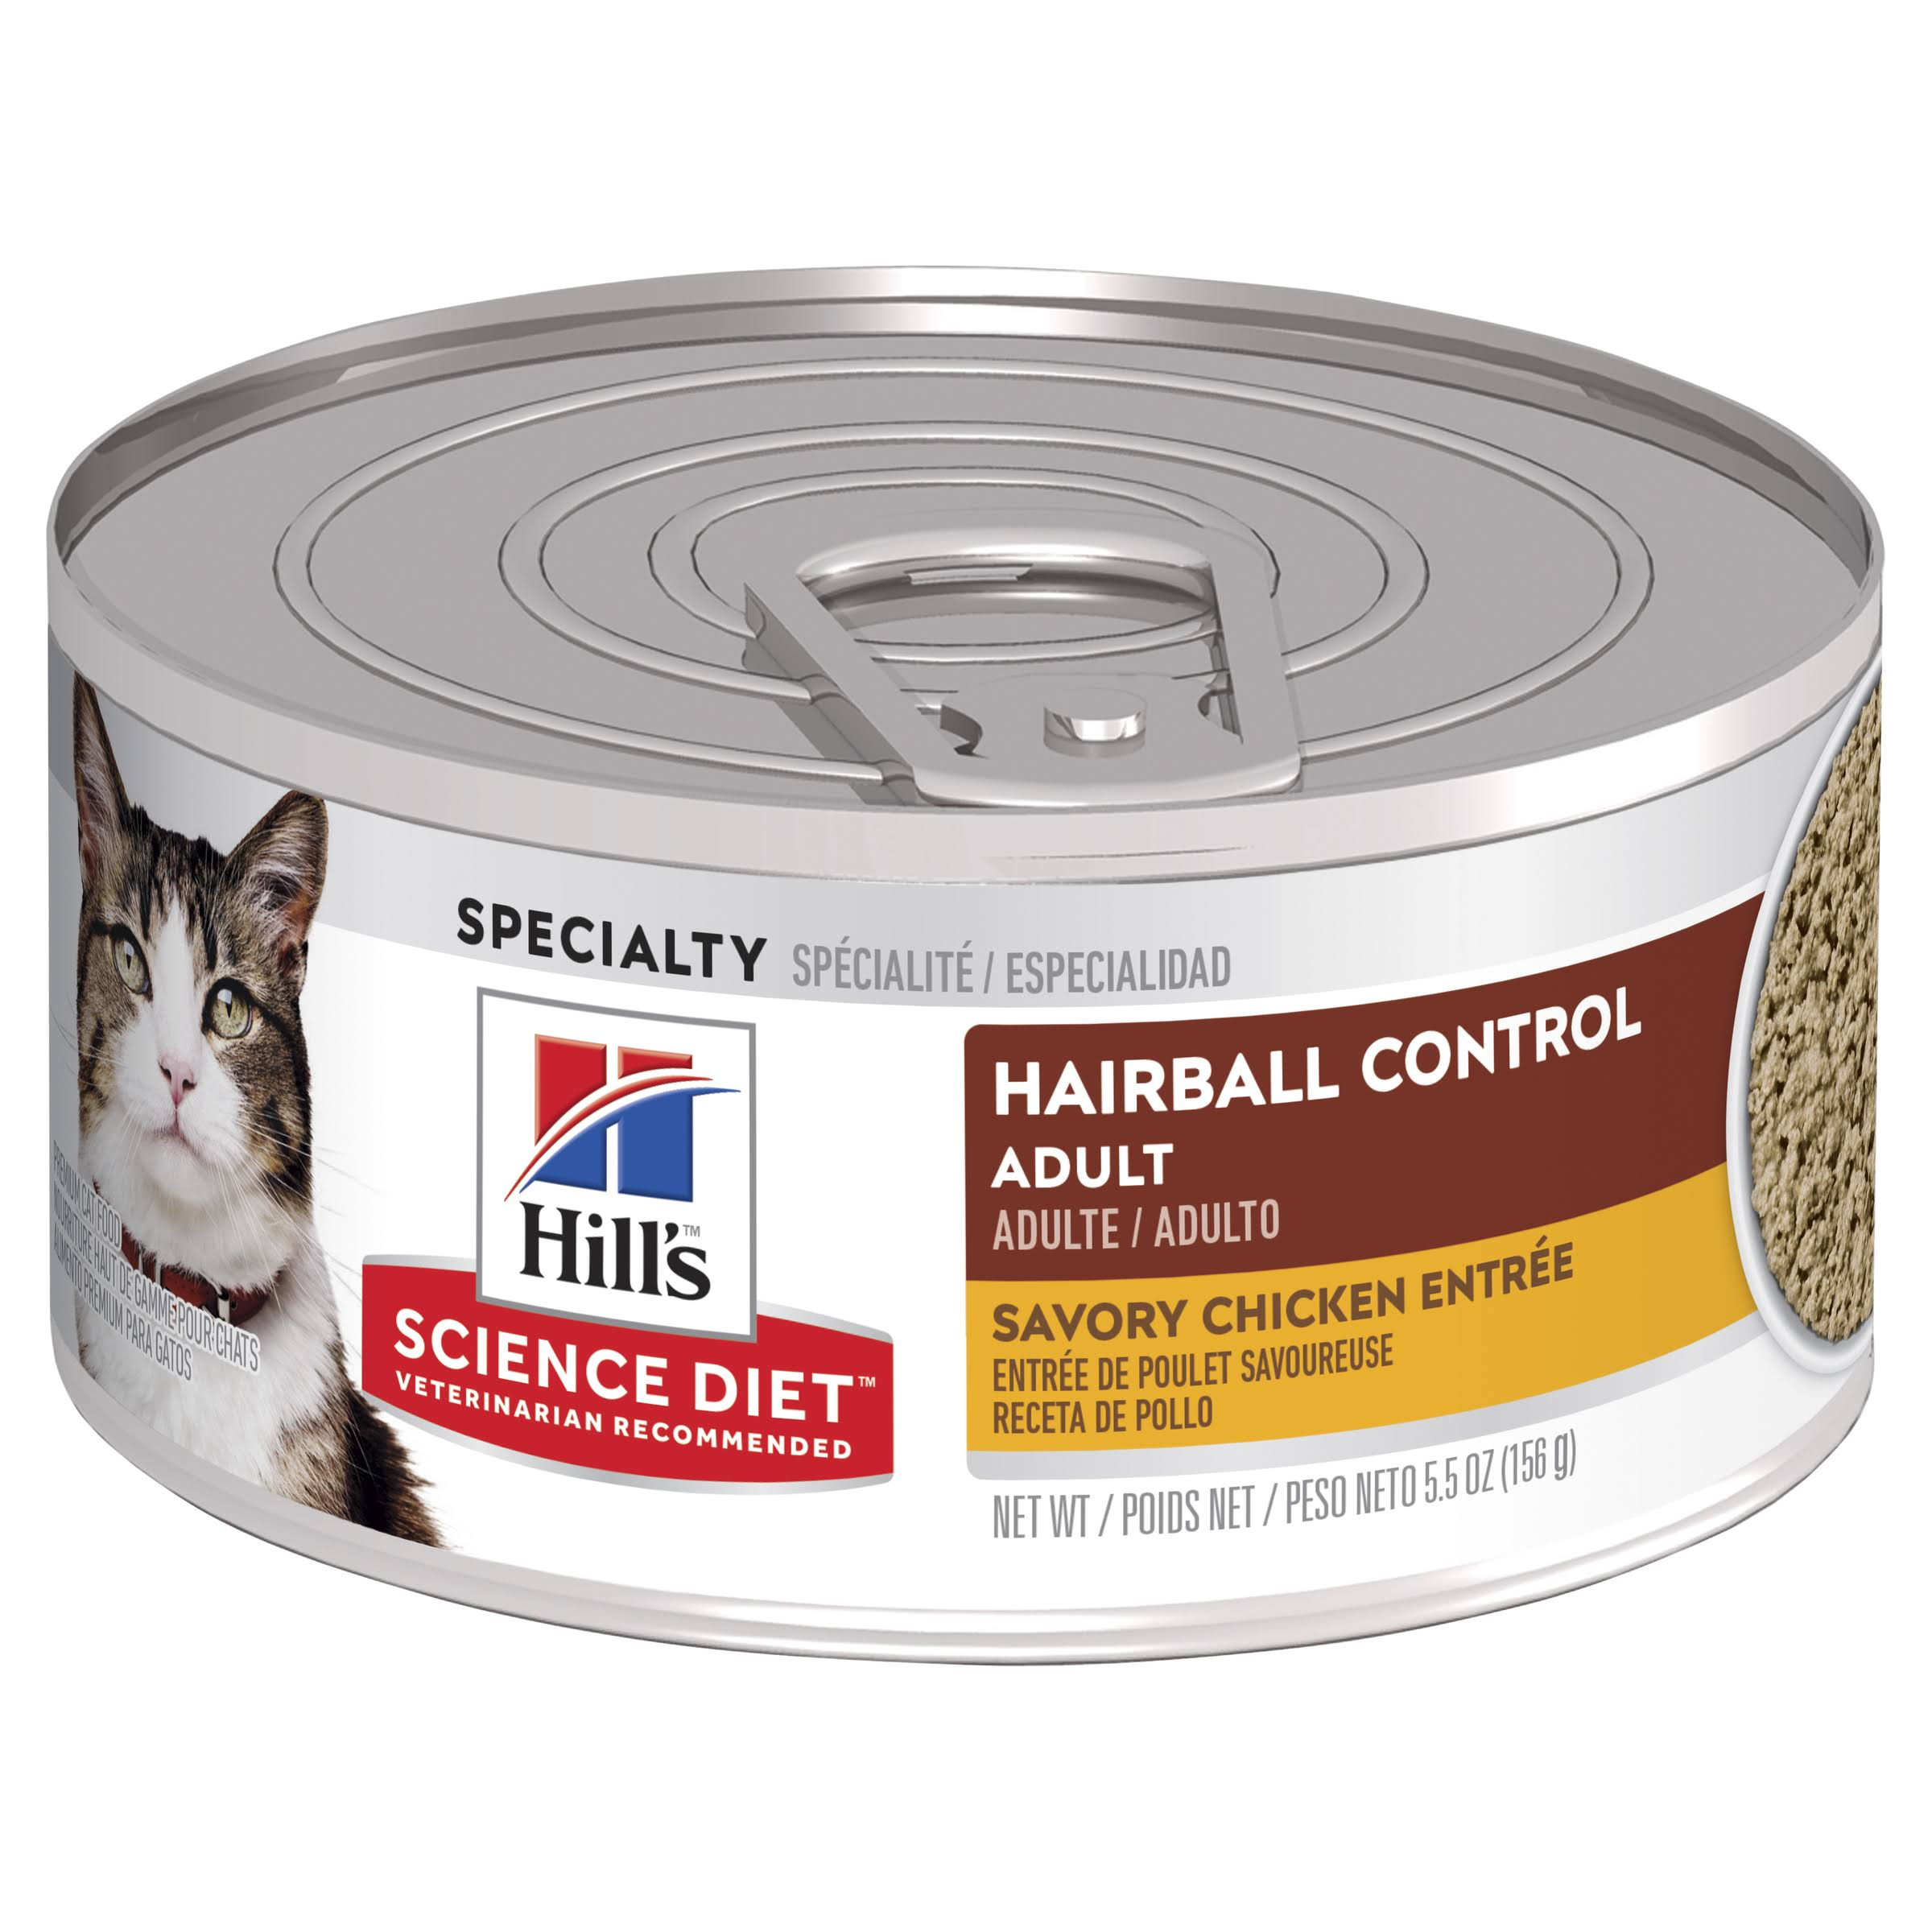 Hill's Science Diet Hairball Control Minced Cat Food - Savory Chicken Entrée, 156g